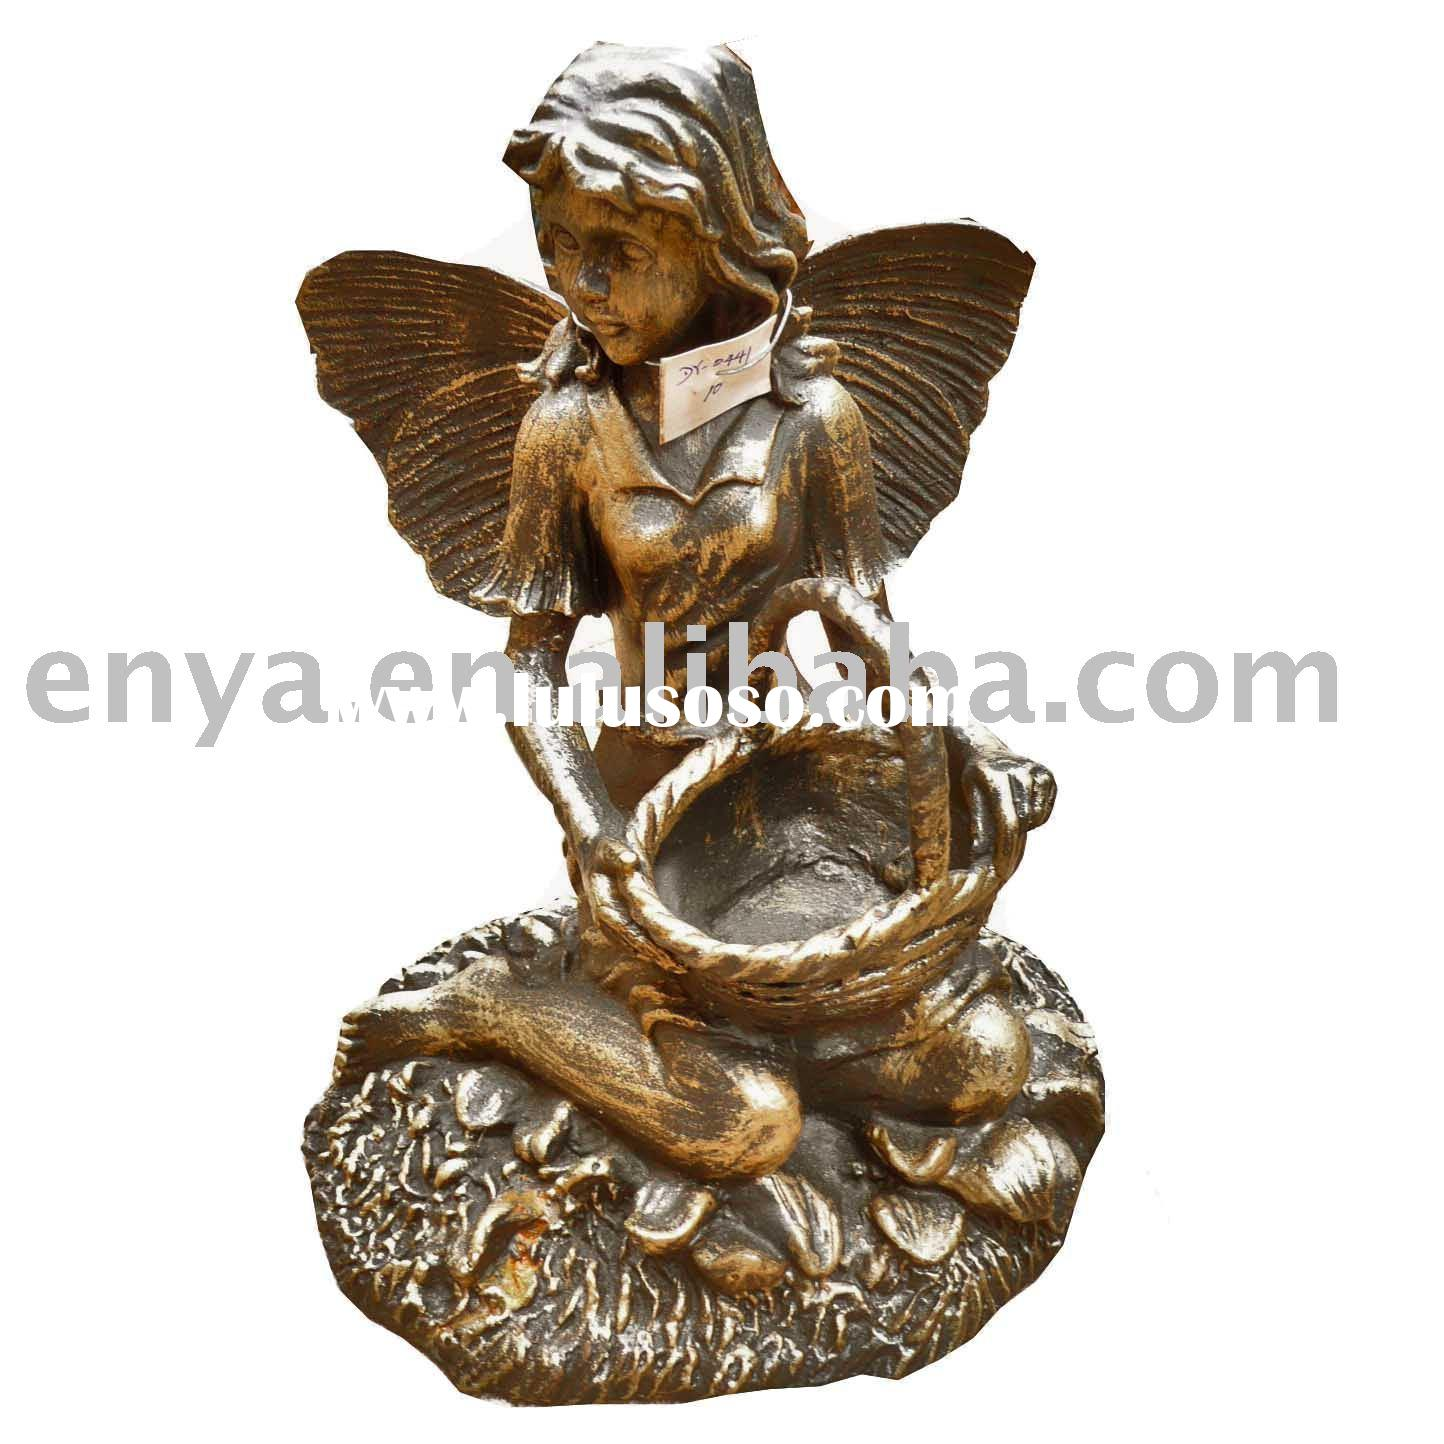 Cast Iron Sculpture, Angel Statue for Garden Ornament/Decoration